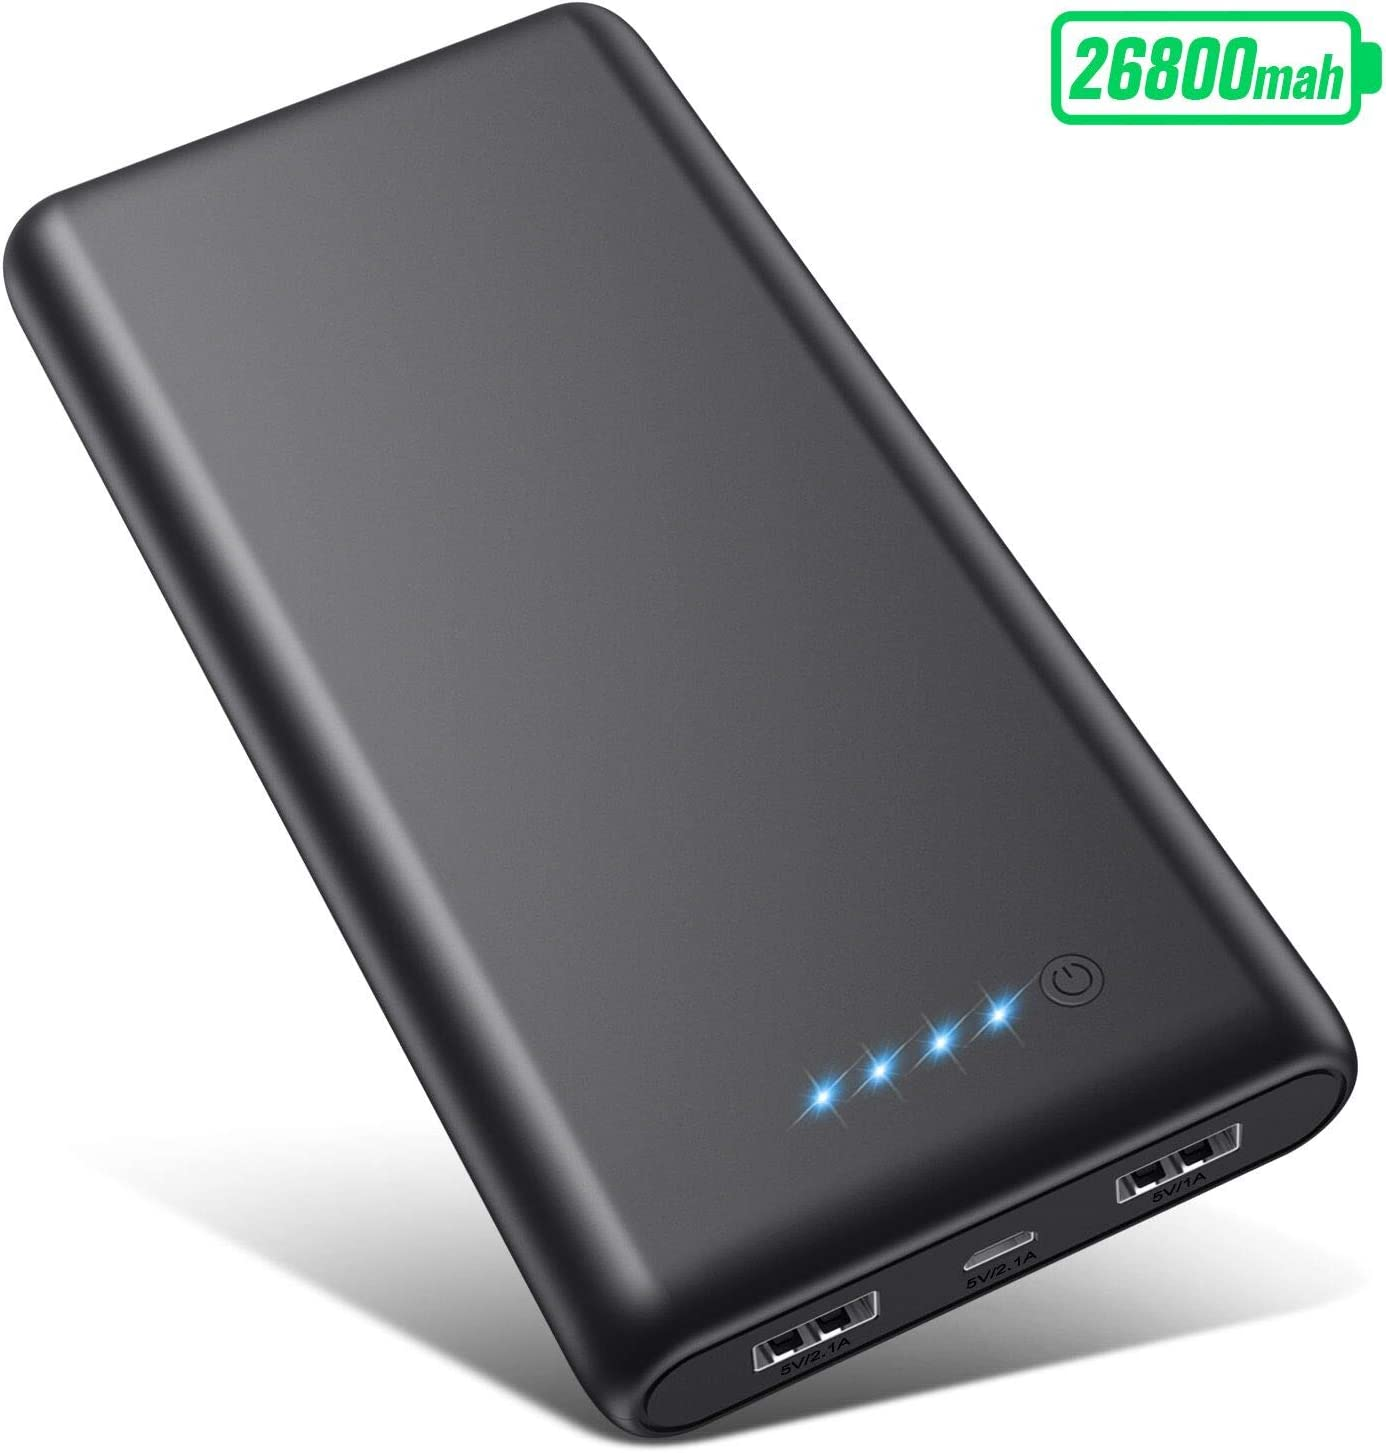 VOOE Power Bank 26800mAh,【Alta efficienza - Altissima capacità】 Carica Batterie...